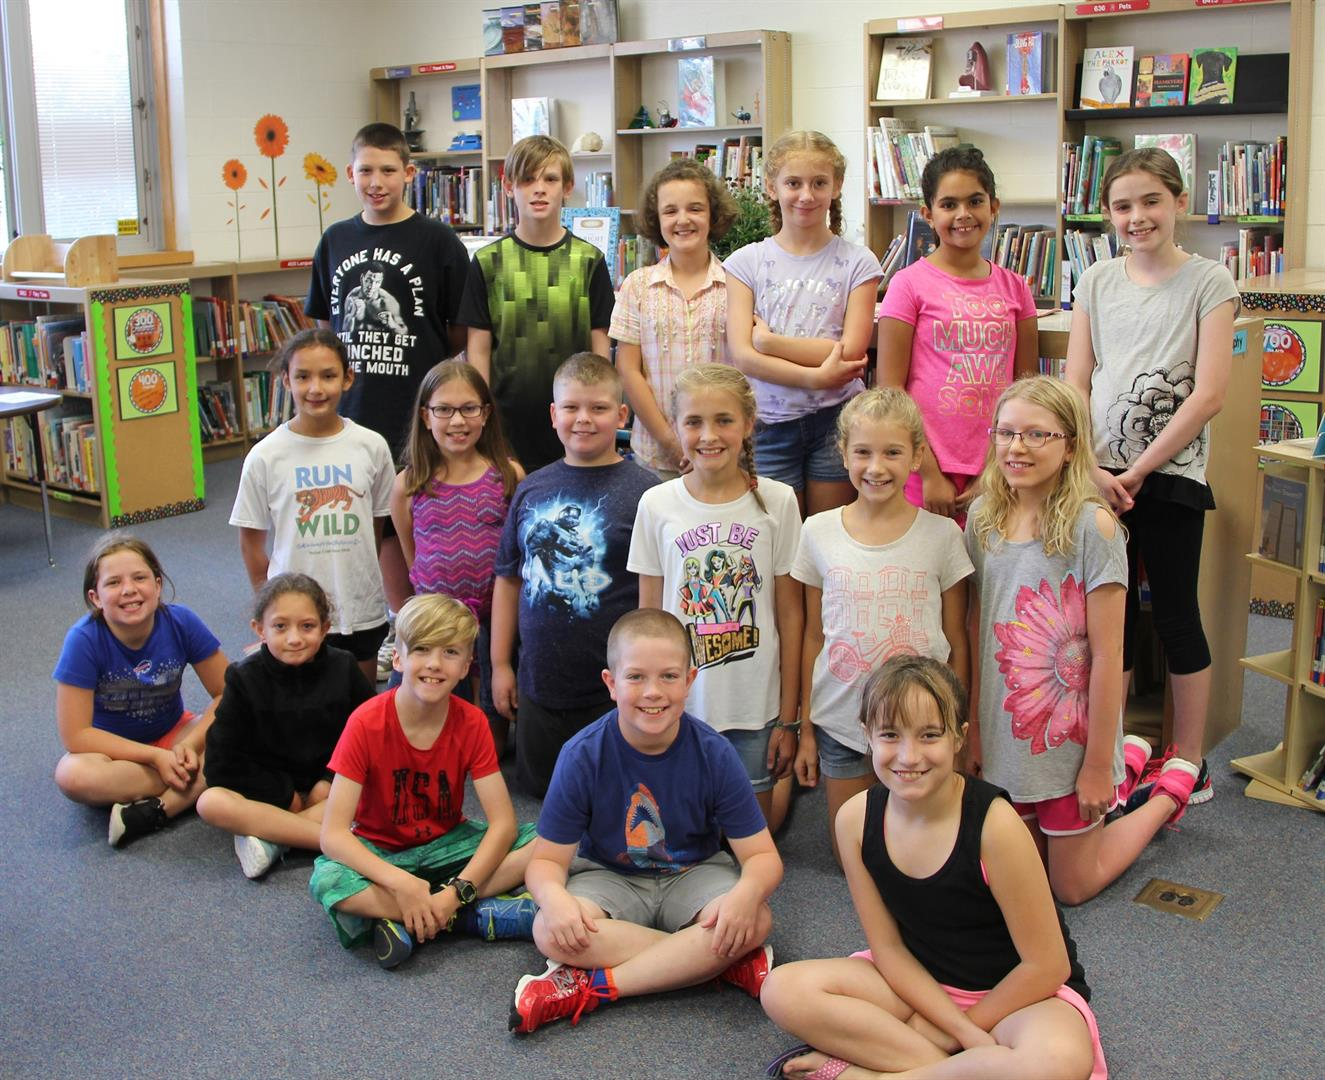 fifth grade students who participated in chenango bridge summer reading bingo challenge